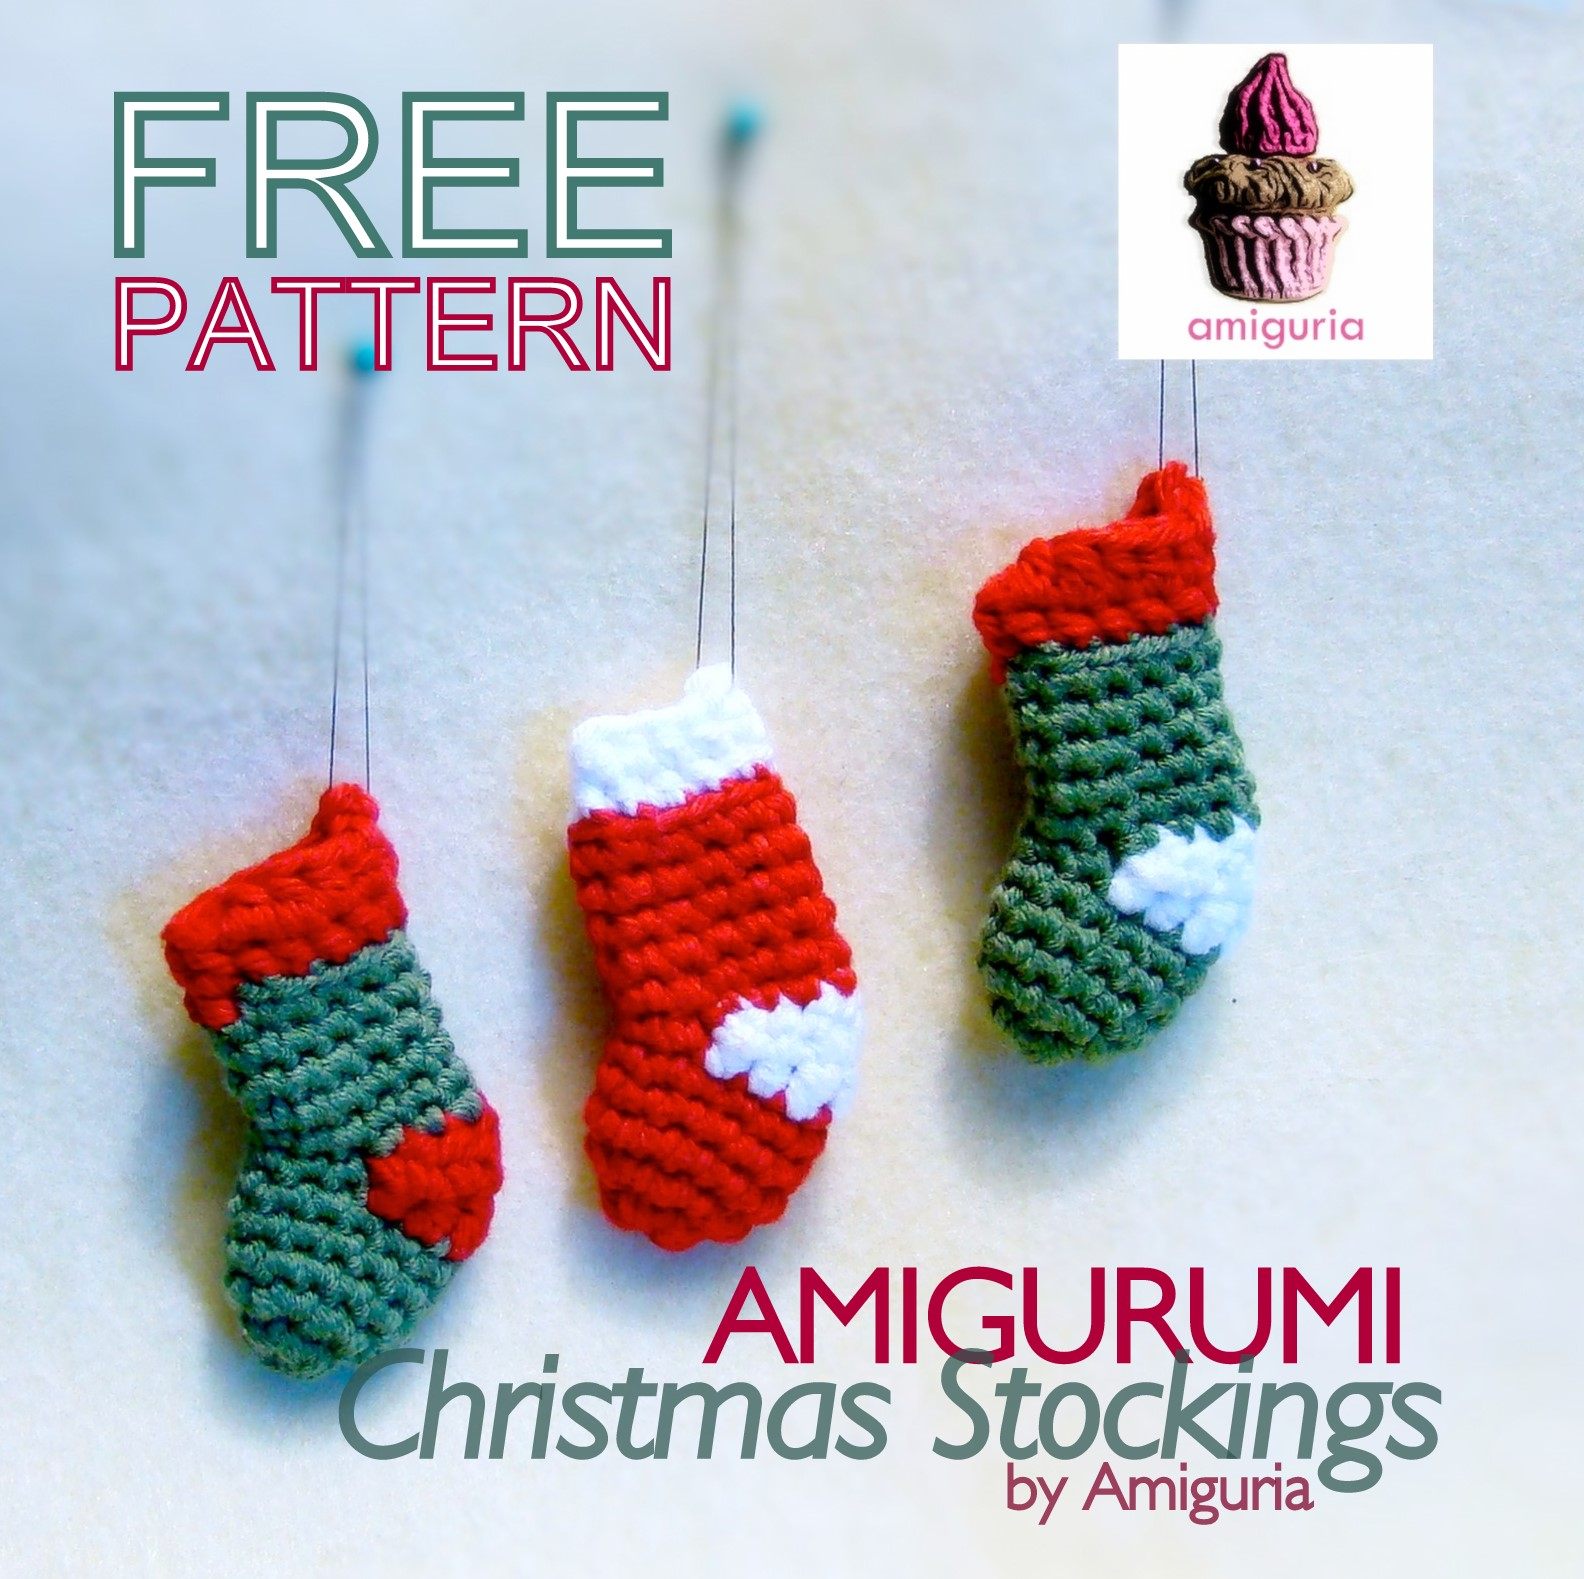 amiguria amigurumi: Free Pattern Christmas Stocking